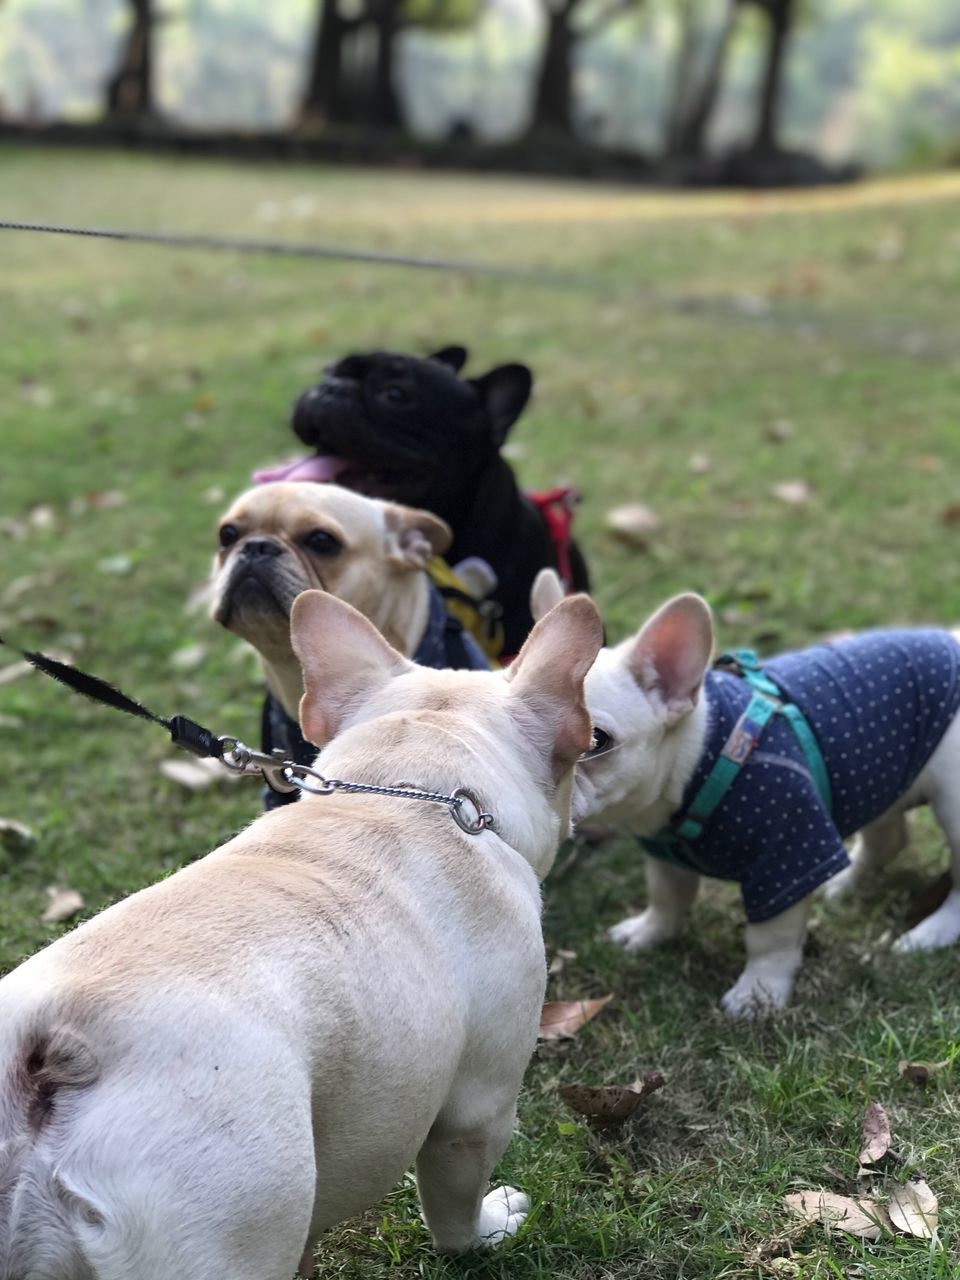 dog, domestic animals, pets, mammal, animal themes, pet collar, one animal, pet leash, day, outdoors, grass, real people, nature, close-up